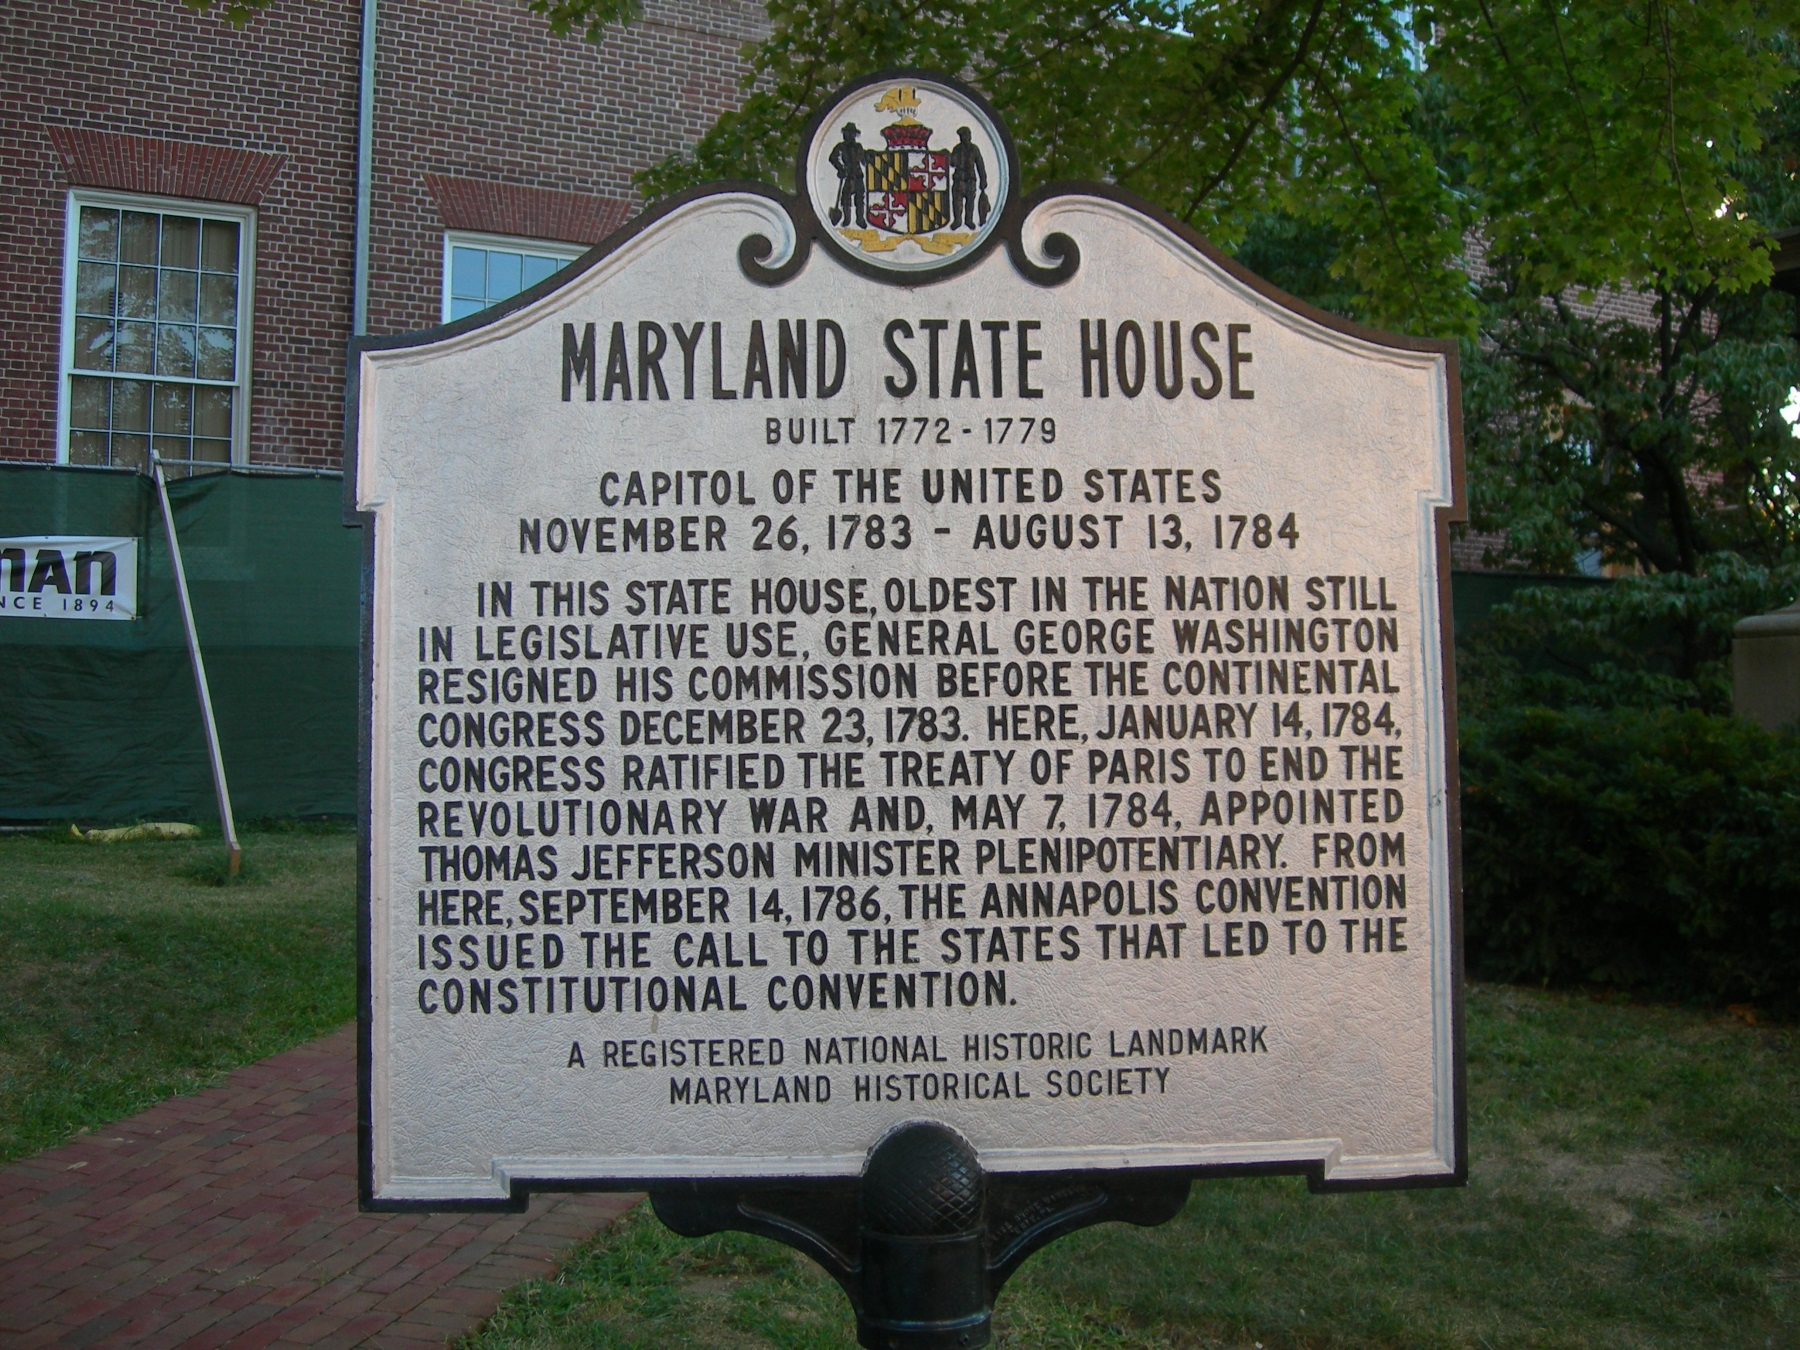 maryland_state_house.jpg